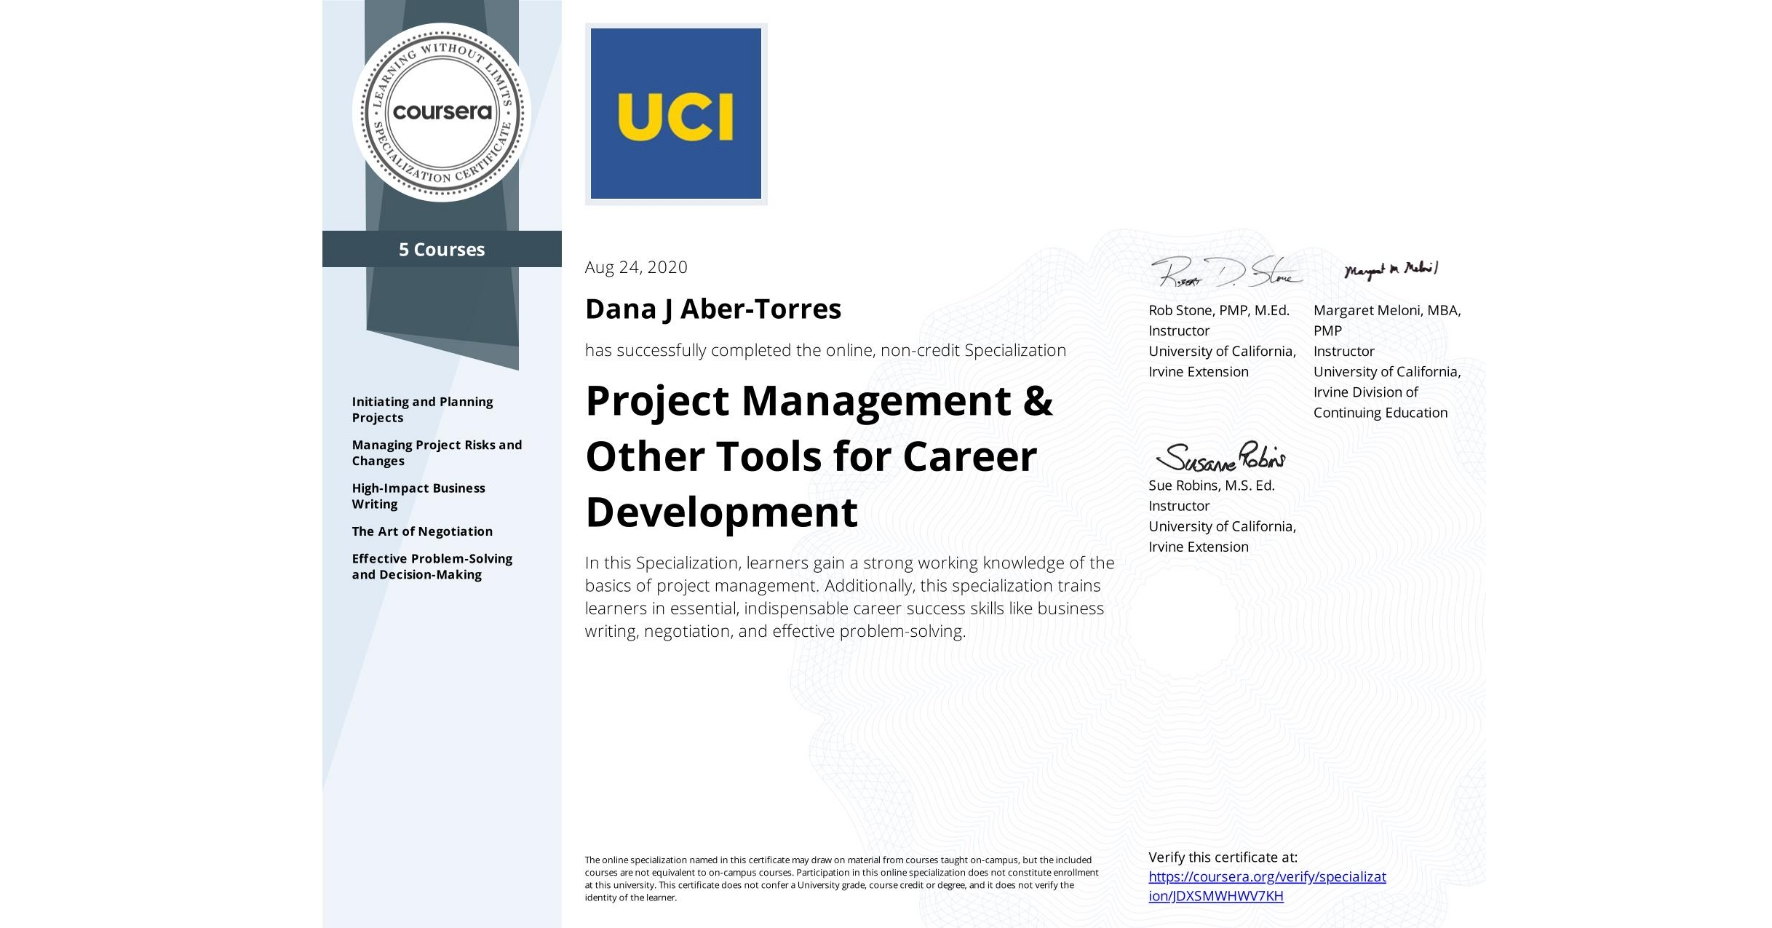 View certificate for Dana J Aber-Torres, Project Management & Other Tools for Career Development, offered through Coursera. In this Specialization, learners gain a strong working knowledge of the basics of project management. Additionally, this specialization trains learners in essential, indispensable career success skills like business writing, negotiation, and effective problem-solving.